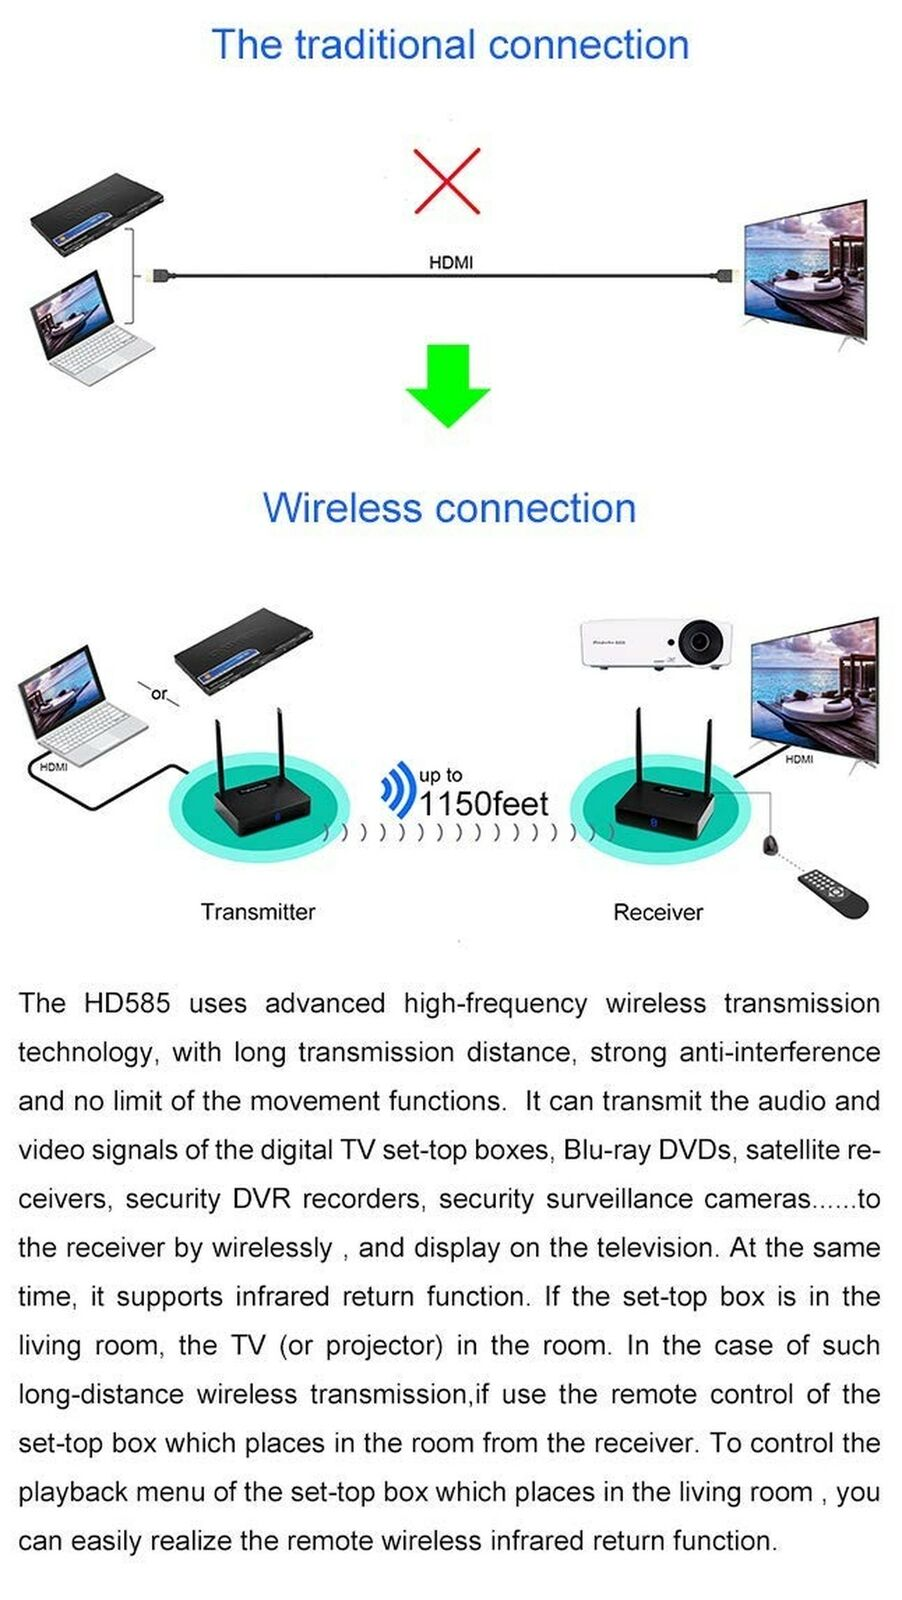 measy HD585-2 Wireless hd kit hdmi transmitter and receiver support 1x2 up to 350m including 2 receivers 1x2